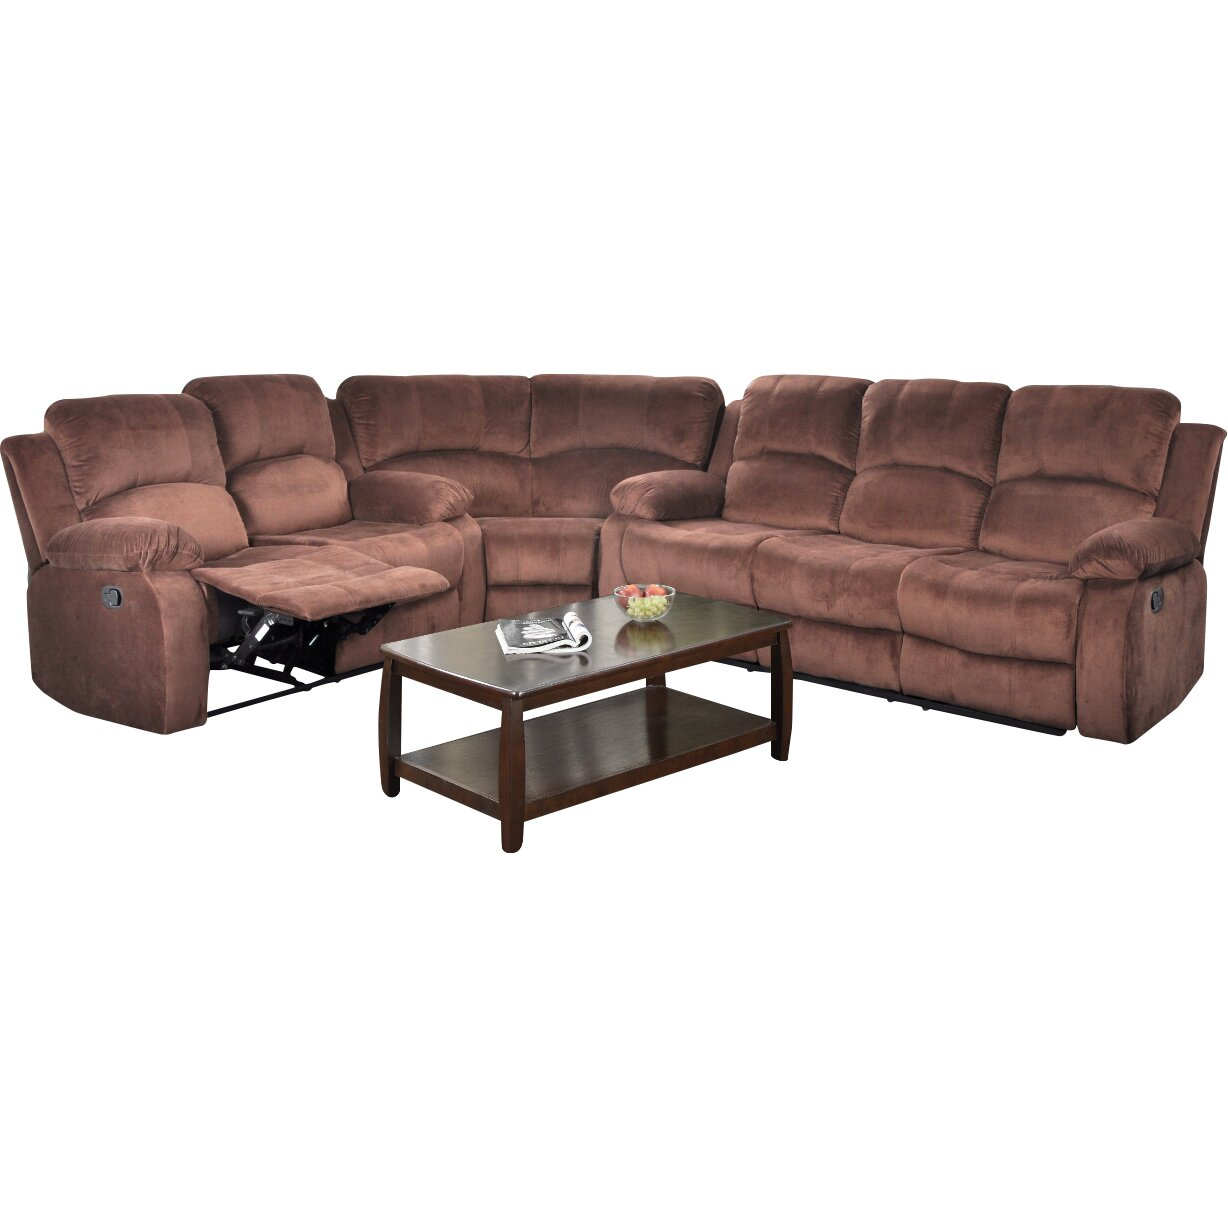 Beverly fine furniture denver sectional reviews wayfair for Sectional sofas denver